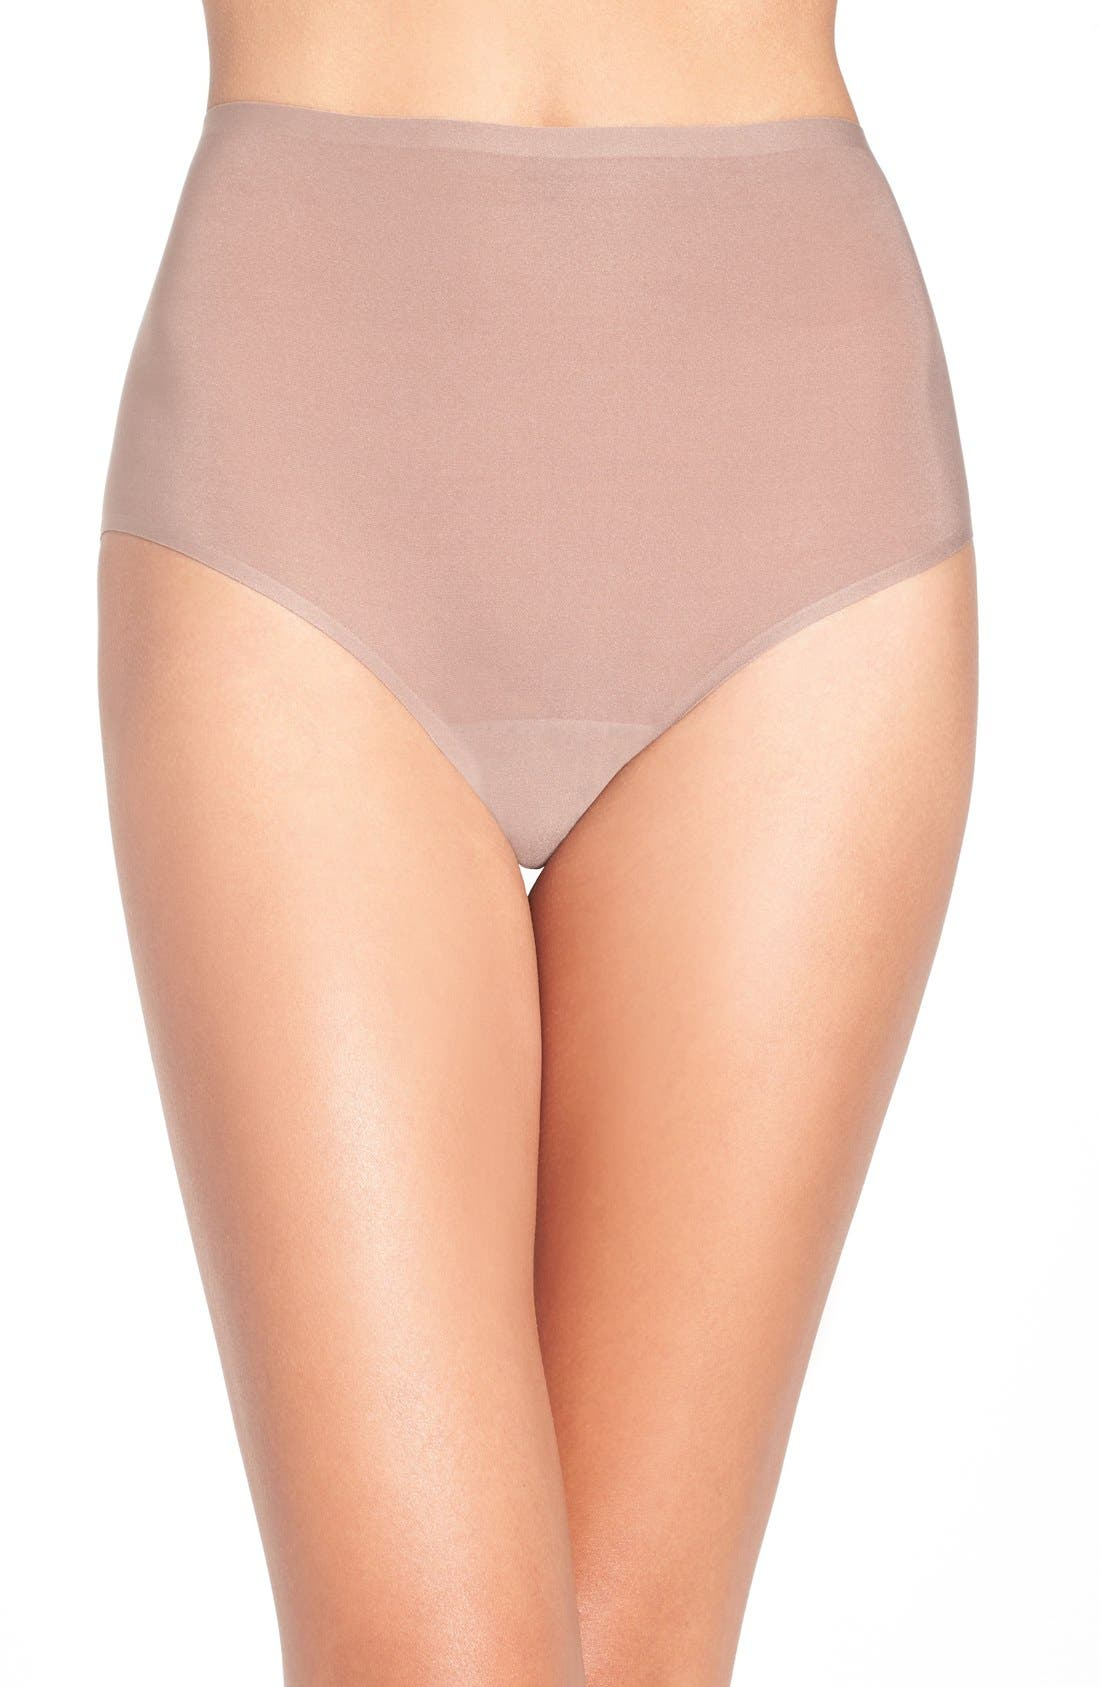 CHANTELLE INTIMATES High Waist Seamless Briefs